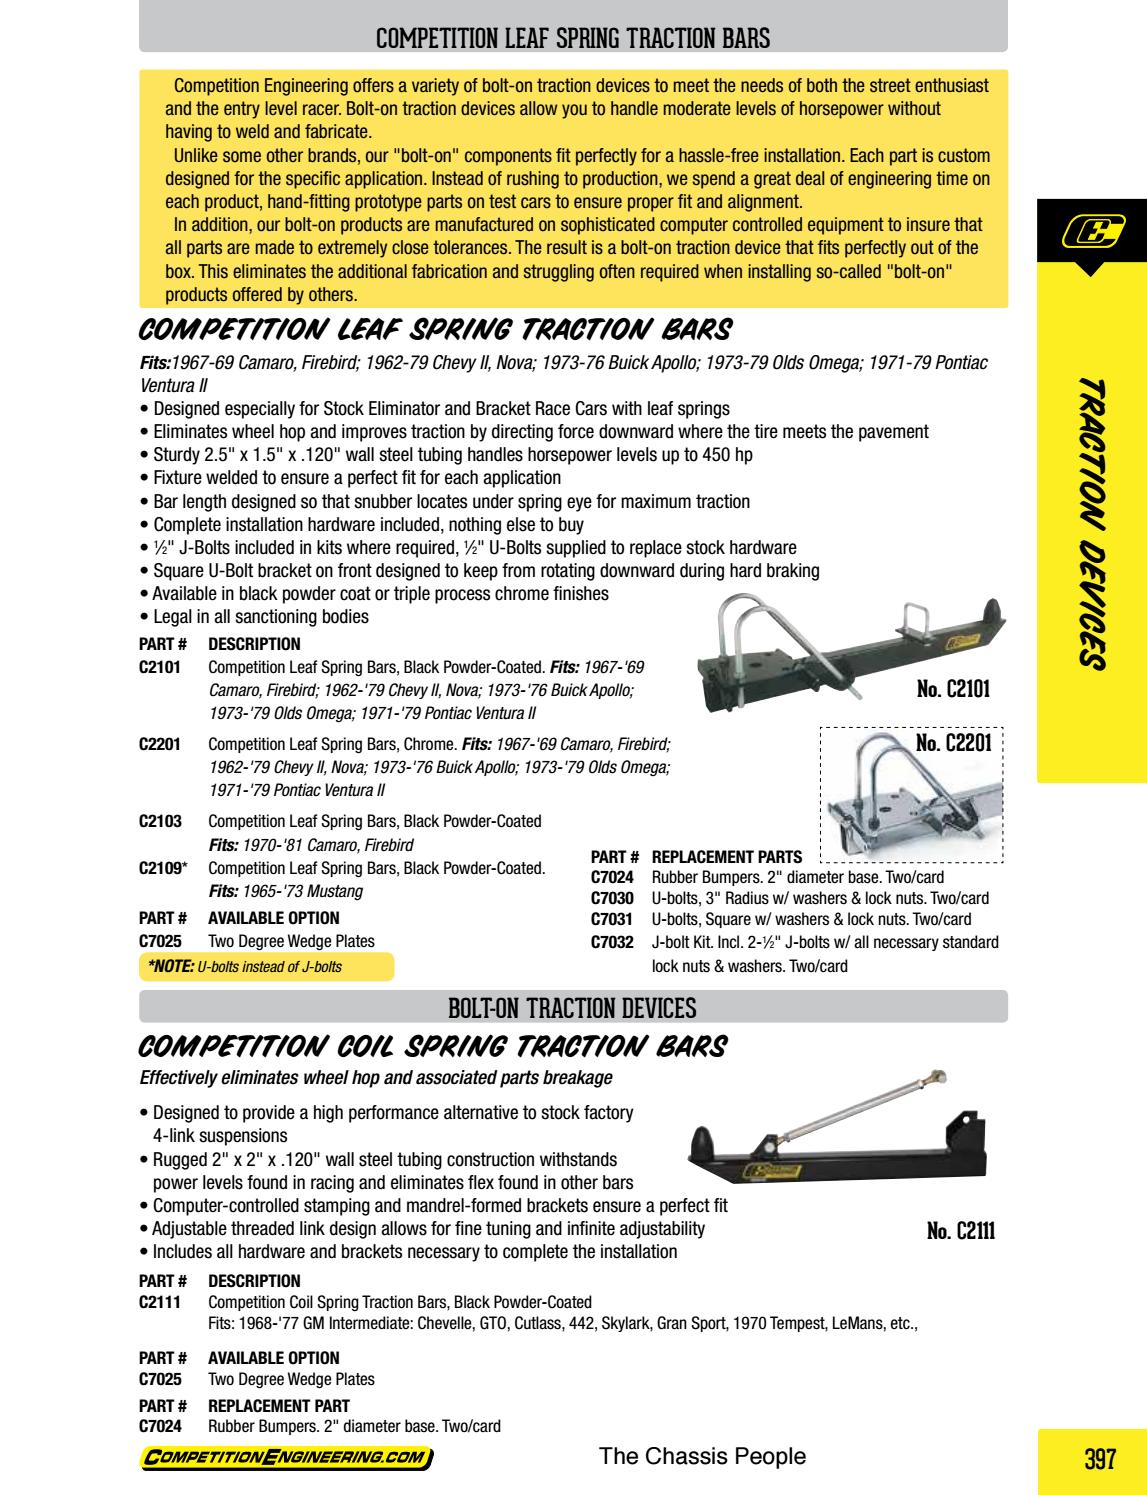 Competition Engineering C2103 Leaf Spring Traction Bar